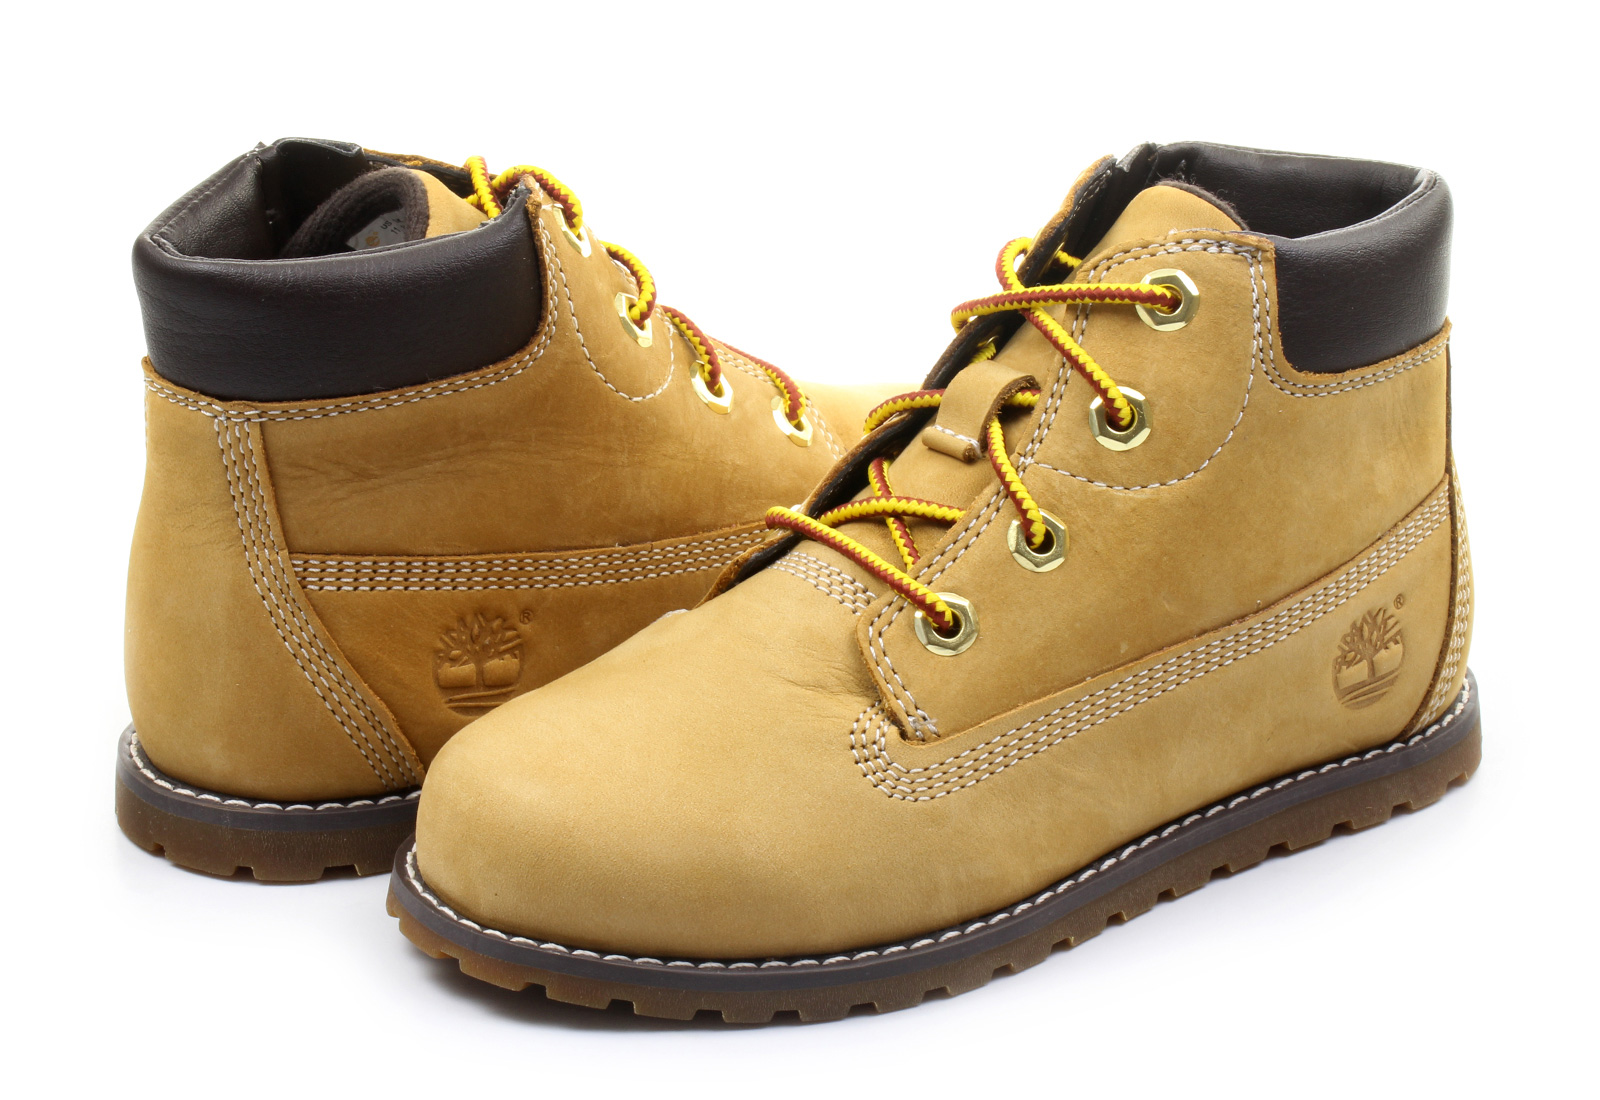 b0138326e305 Timberland Boots - Pokey Pine 6 Inch Boot - a125q-whe - Online shop ...